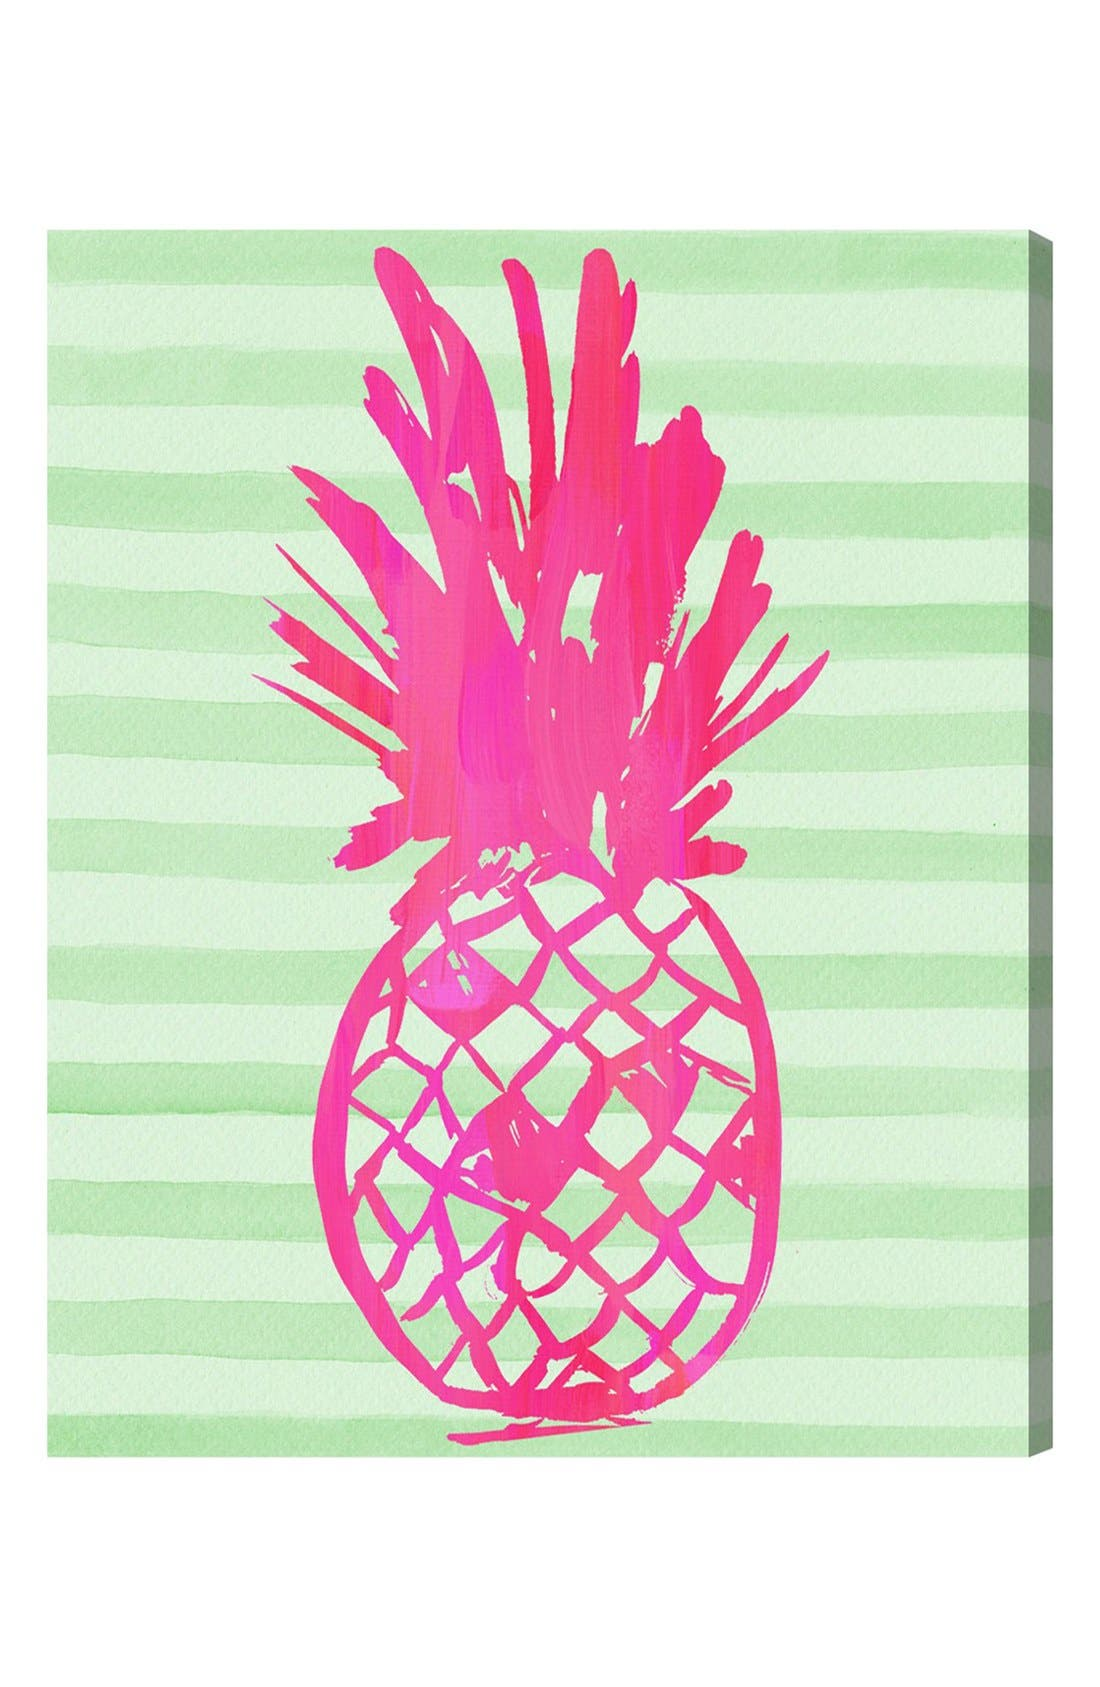 Alternate Image 1 Selected - Oliver Gal 'Pink Pineapple' Hand Stretched Canvas Wall Art